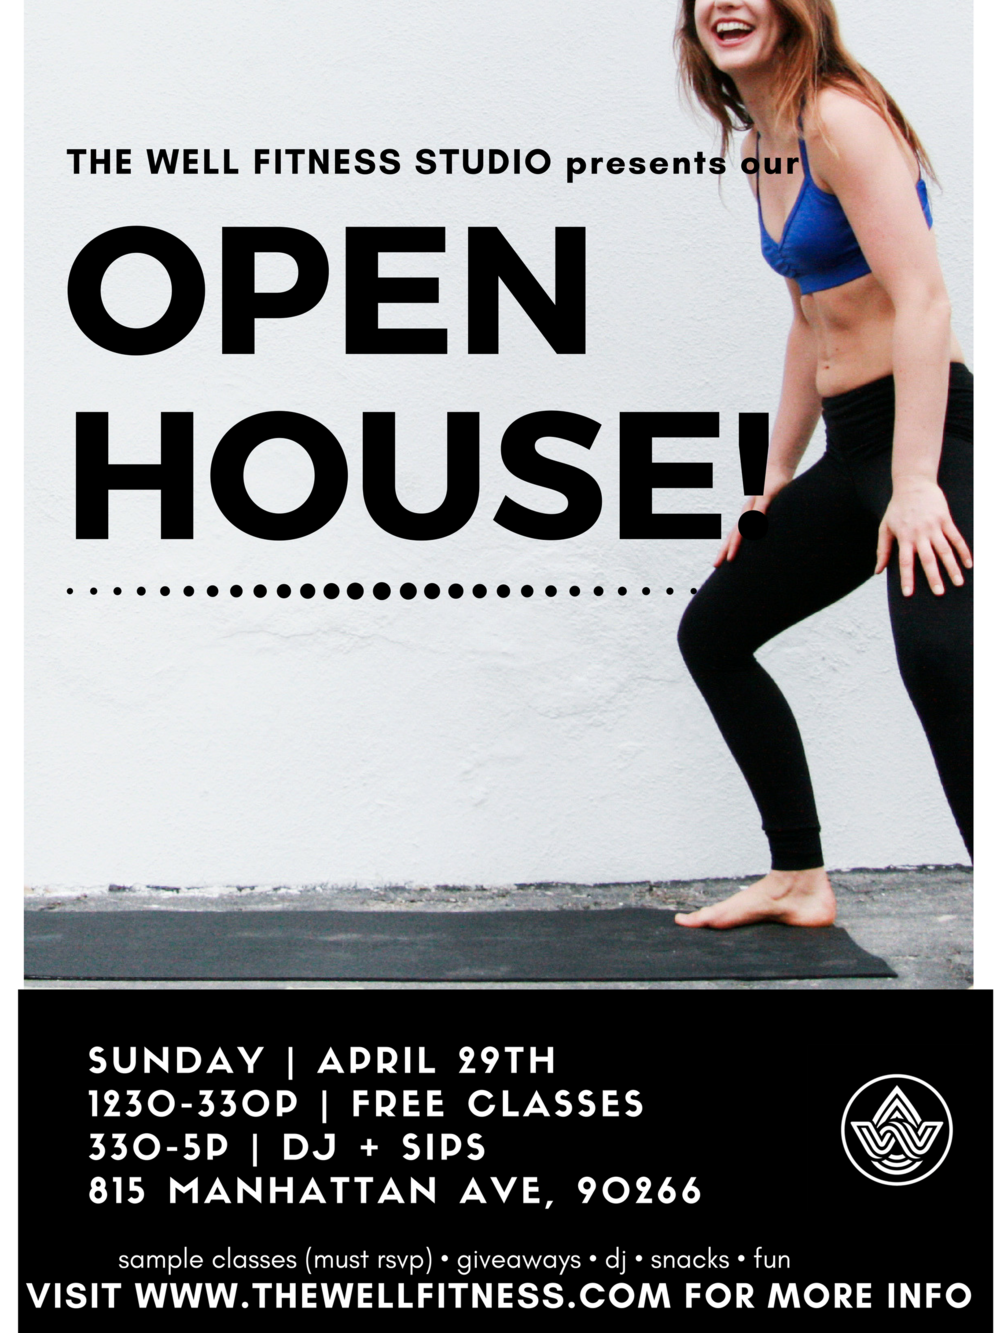 Join The Well Fitness Studio on Sunday, April 29th for our Open House!  - Sample classes like Vinyasa, Sculpt, Sound Healing and Nidra from 12:30-3:30pm for free (must rsvp) at www.thewellfitness.com. Just get to know us and have some fun from 3:30-5pm with a DJ, sips, a fantastic trunk show from Lorna Jane and enter our raffle for a chance to win SIX MONTHS of membership and more!!Visit www.thewellfitness.com for more info!